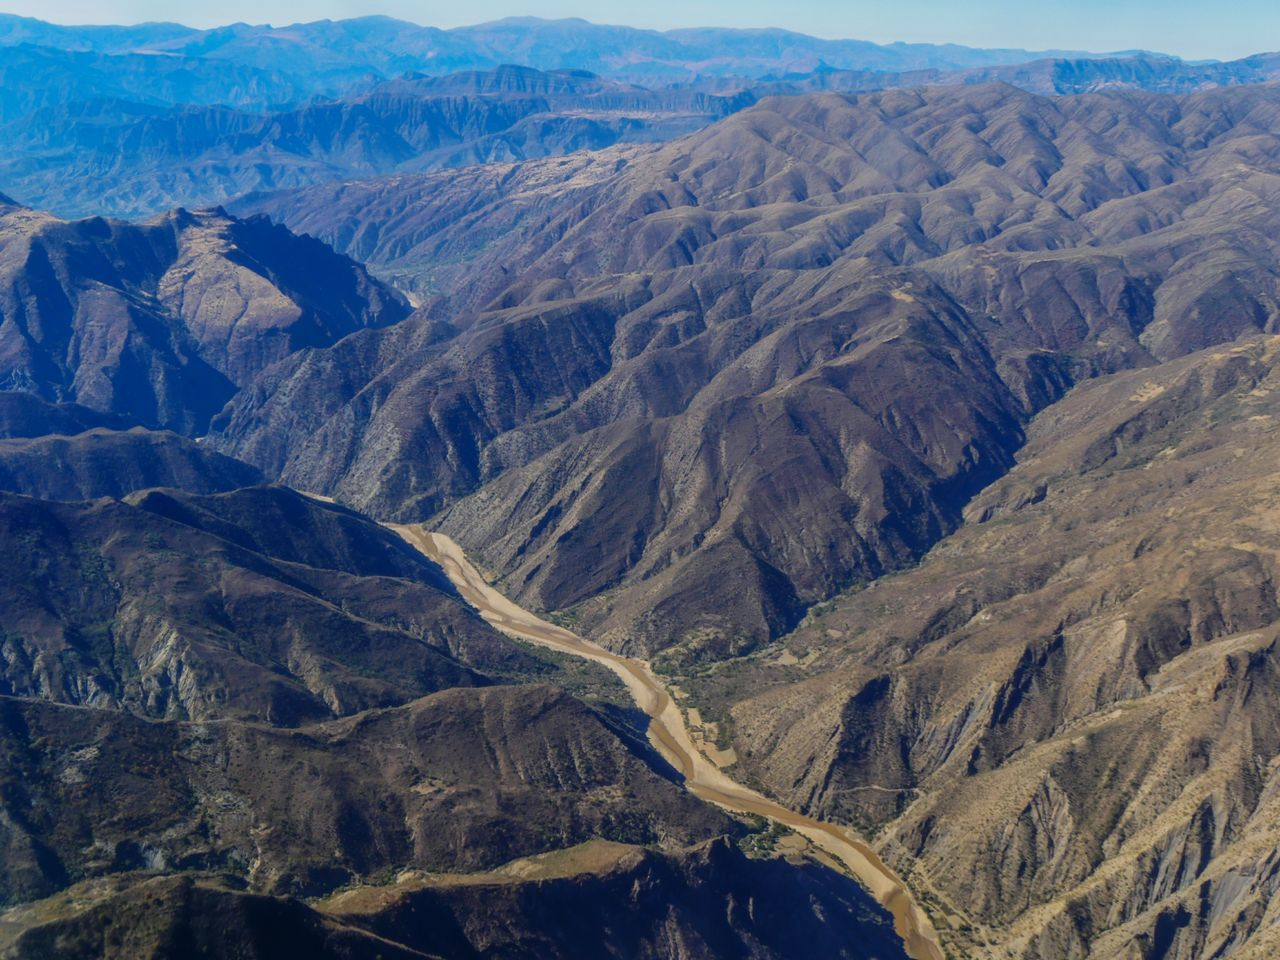 Canyon flying over Peru Beauty In Nature Nature Landscape Scenics Mountain Outdoors Traveling Landscape_Collection Eye4photography  EyeEm Nature Lover Nature_collection Landscapes Travel Flying High Aerial View Mountains Mountain Range Canyon Peru Travel Destinations On The Road From An Airplane Window Flying